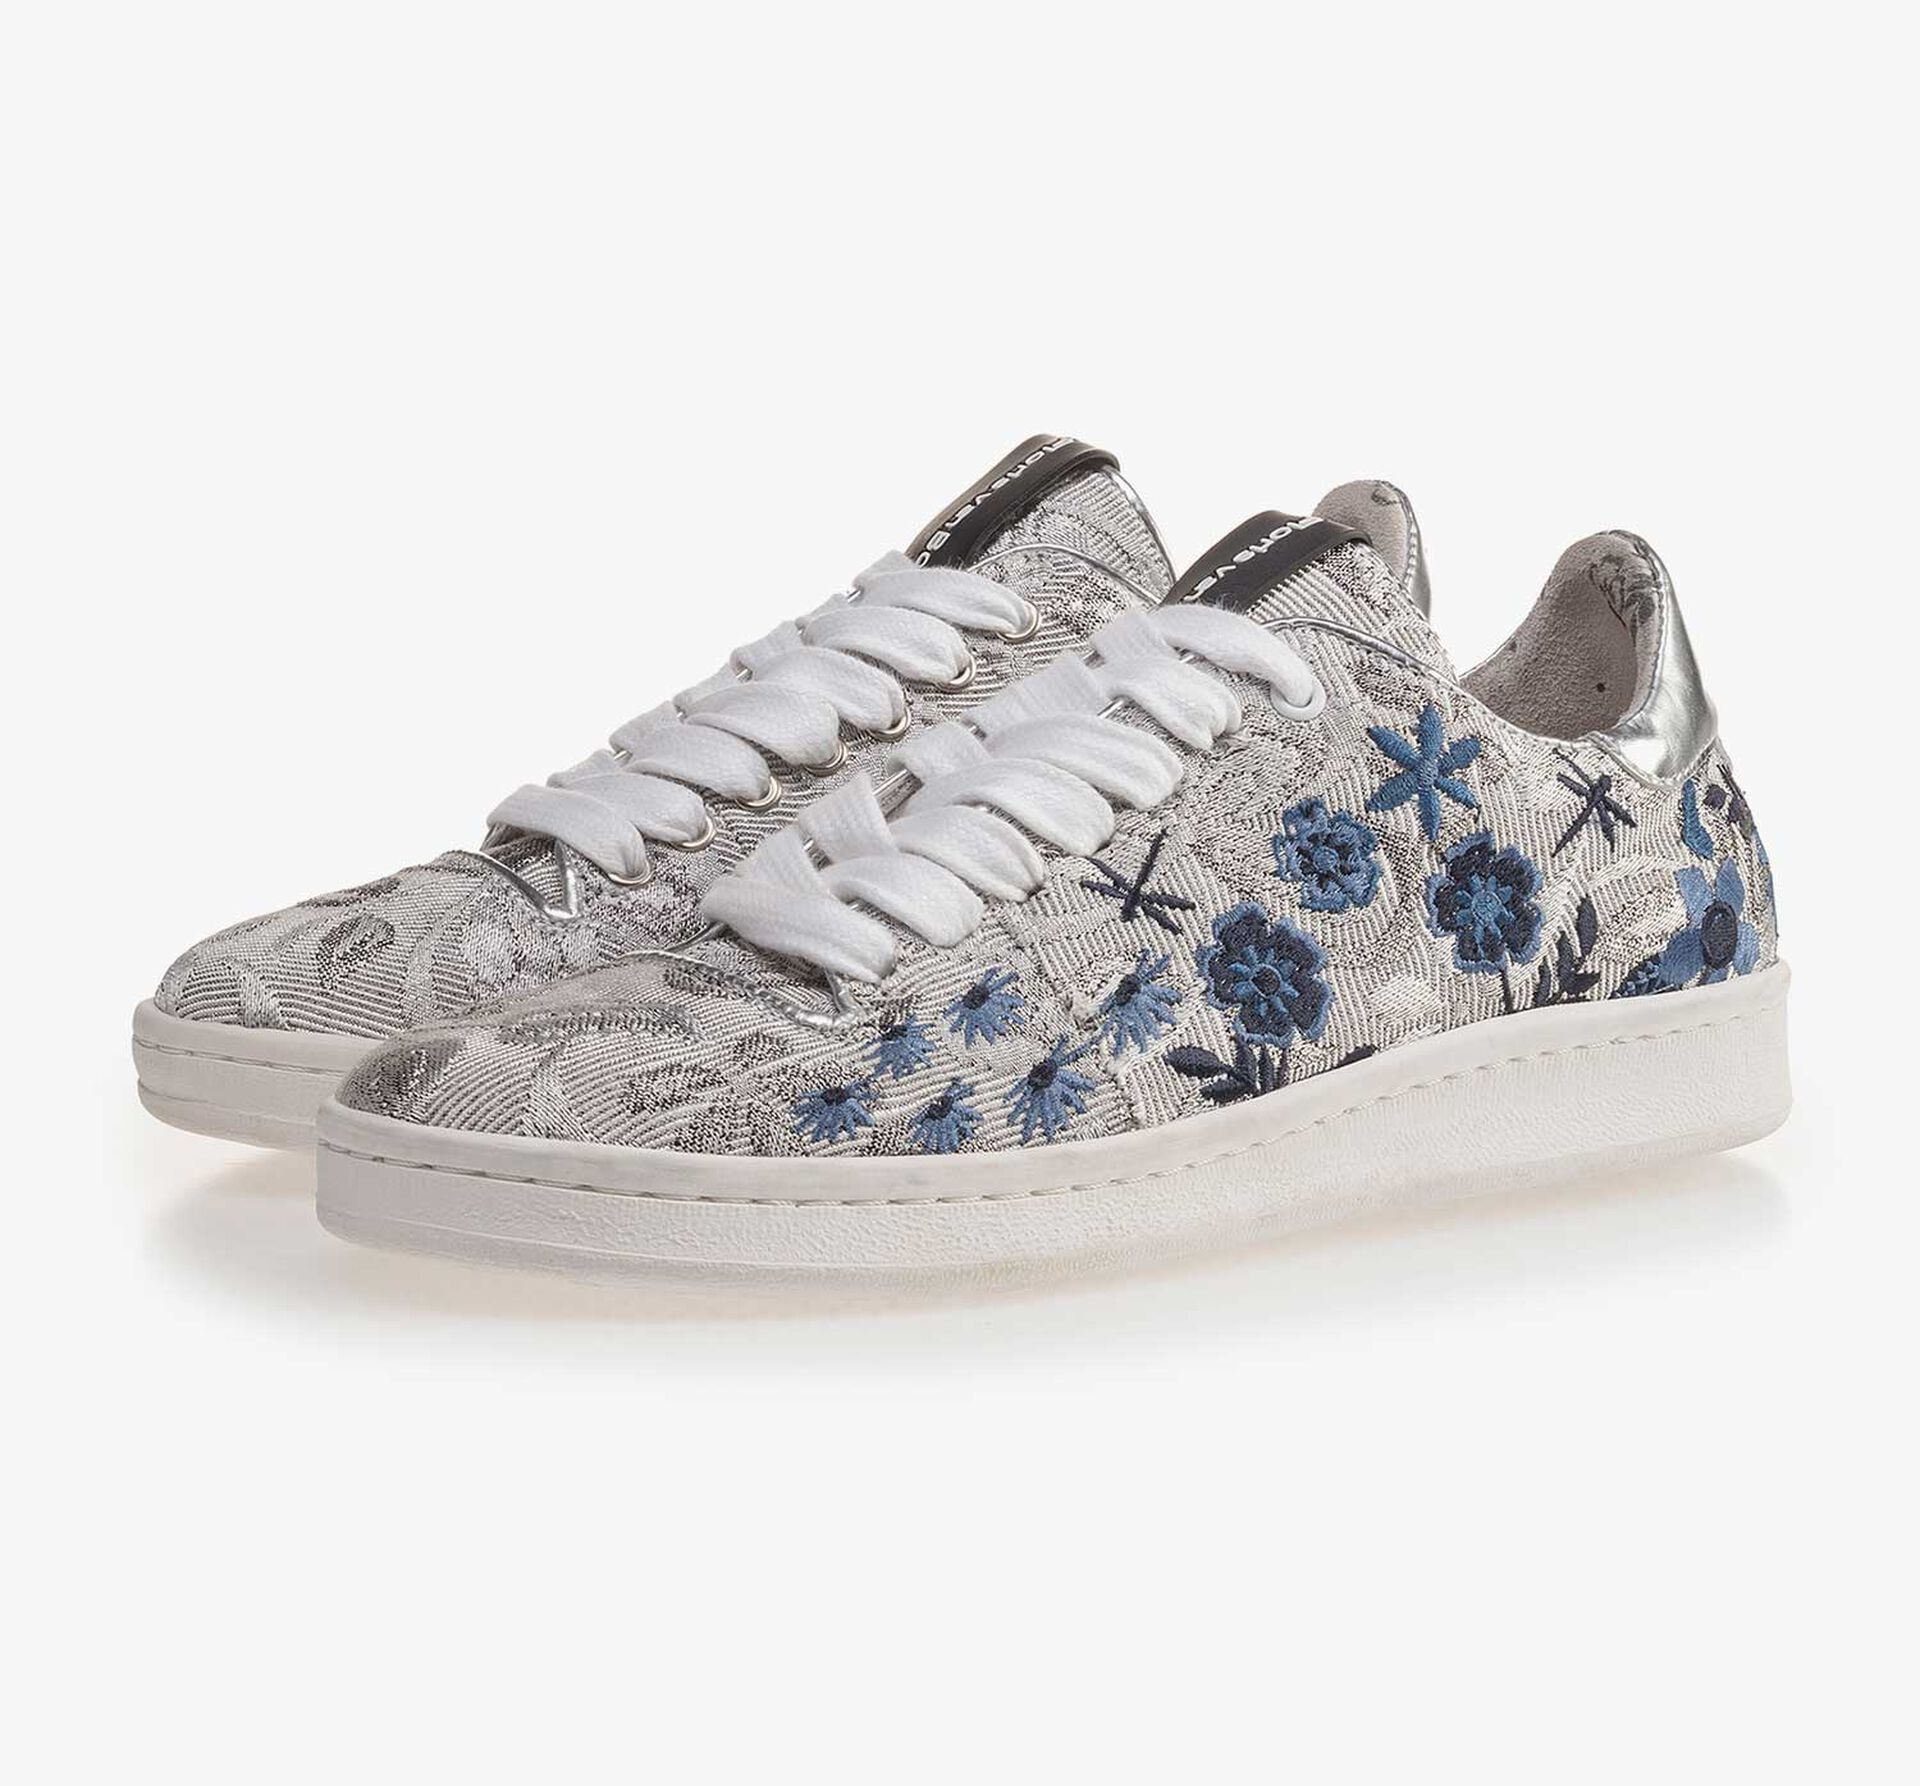 Silver-coloured sneaker with floral embroidery stitching